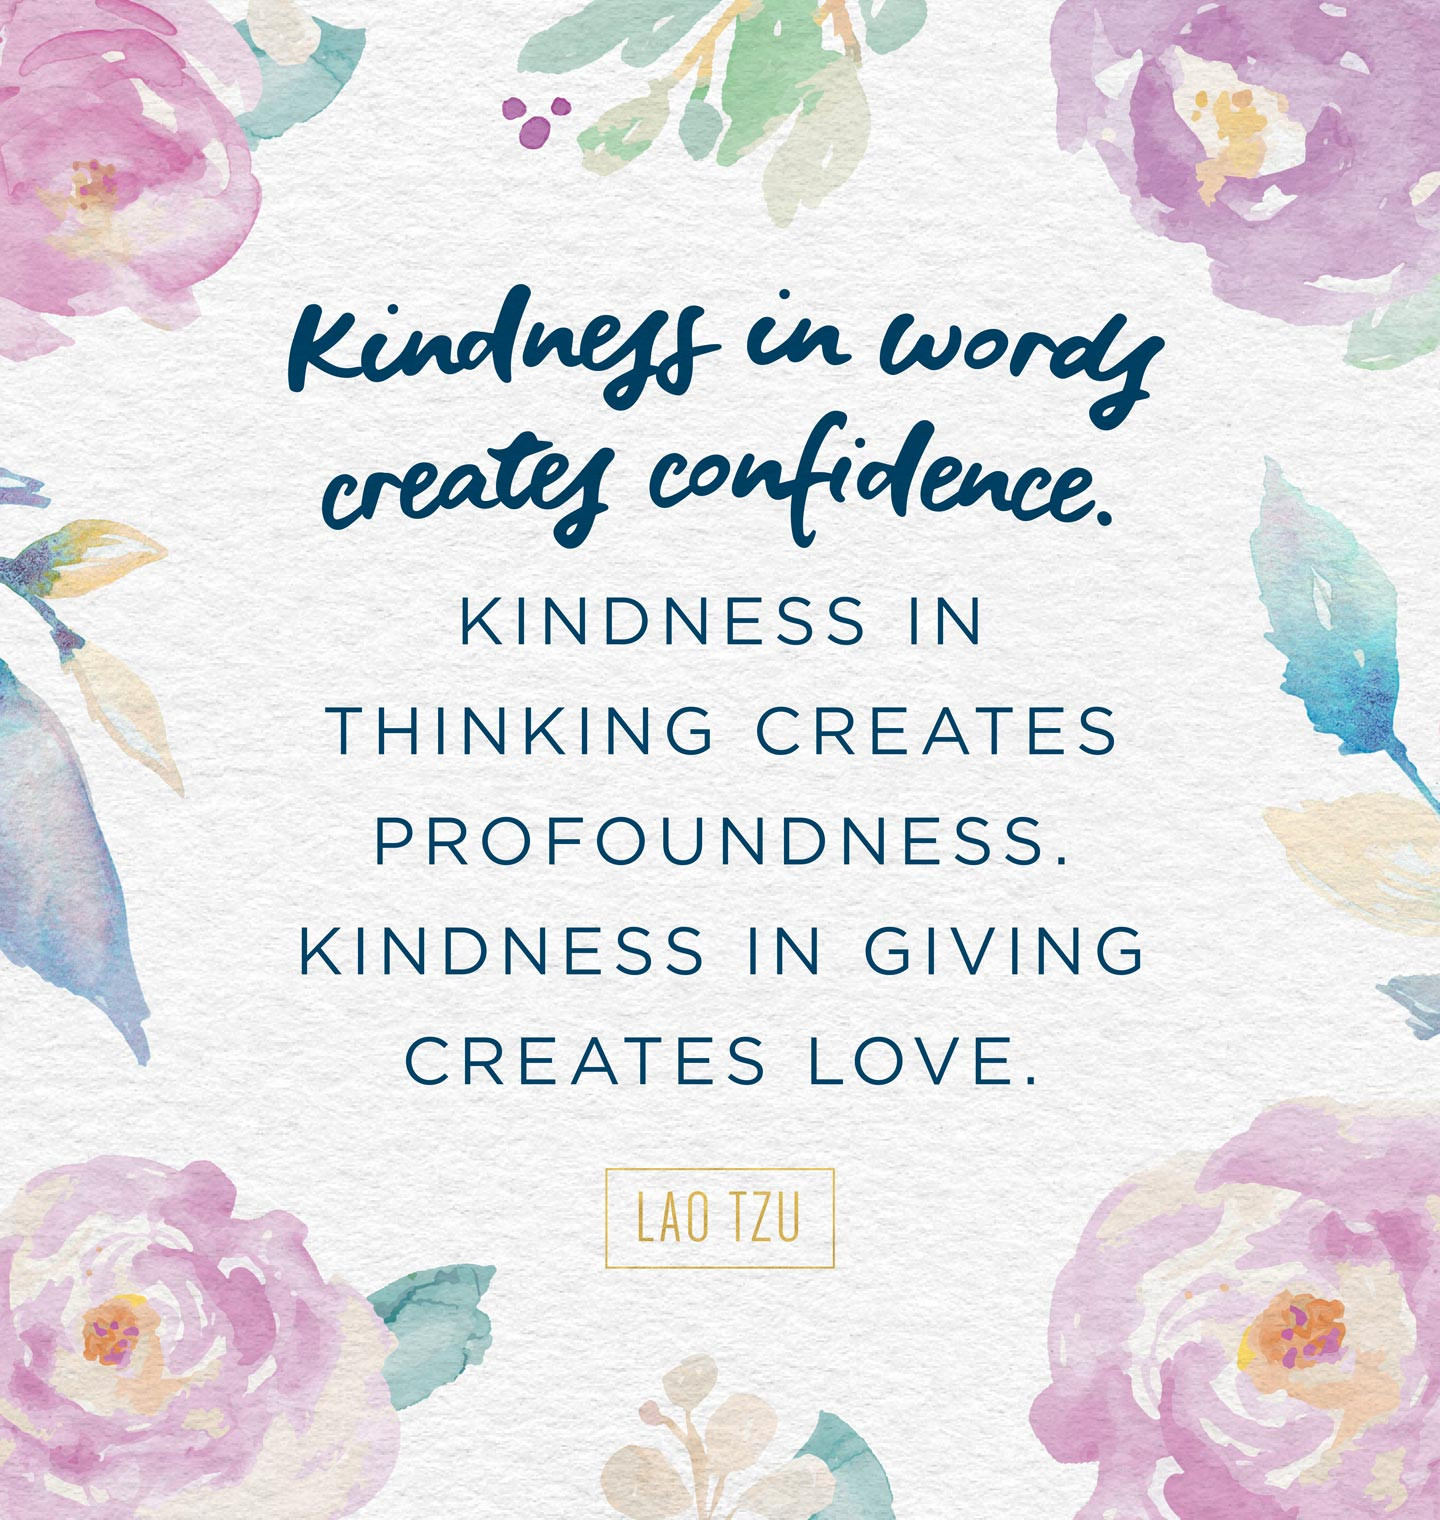 Kindness Quotes  30 Inspiring Kindness Quotes That Will Enlighten You FTD